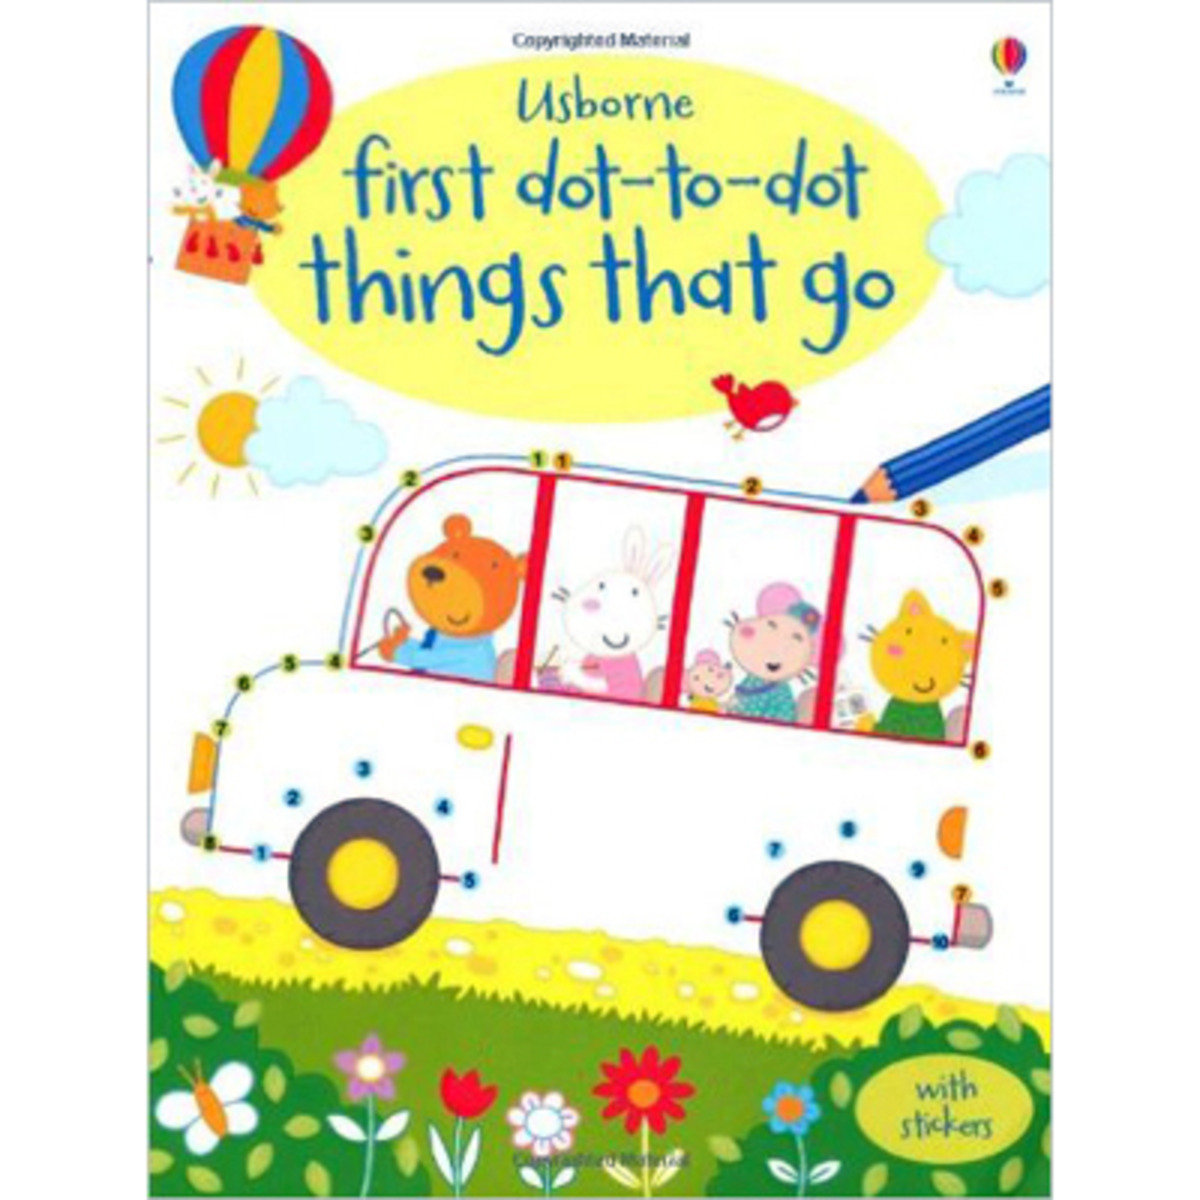 First Dot-To-Dot Things That Go